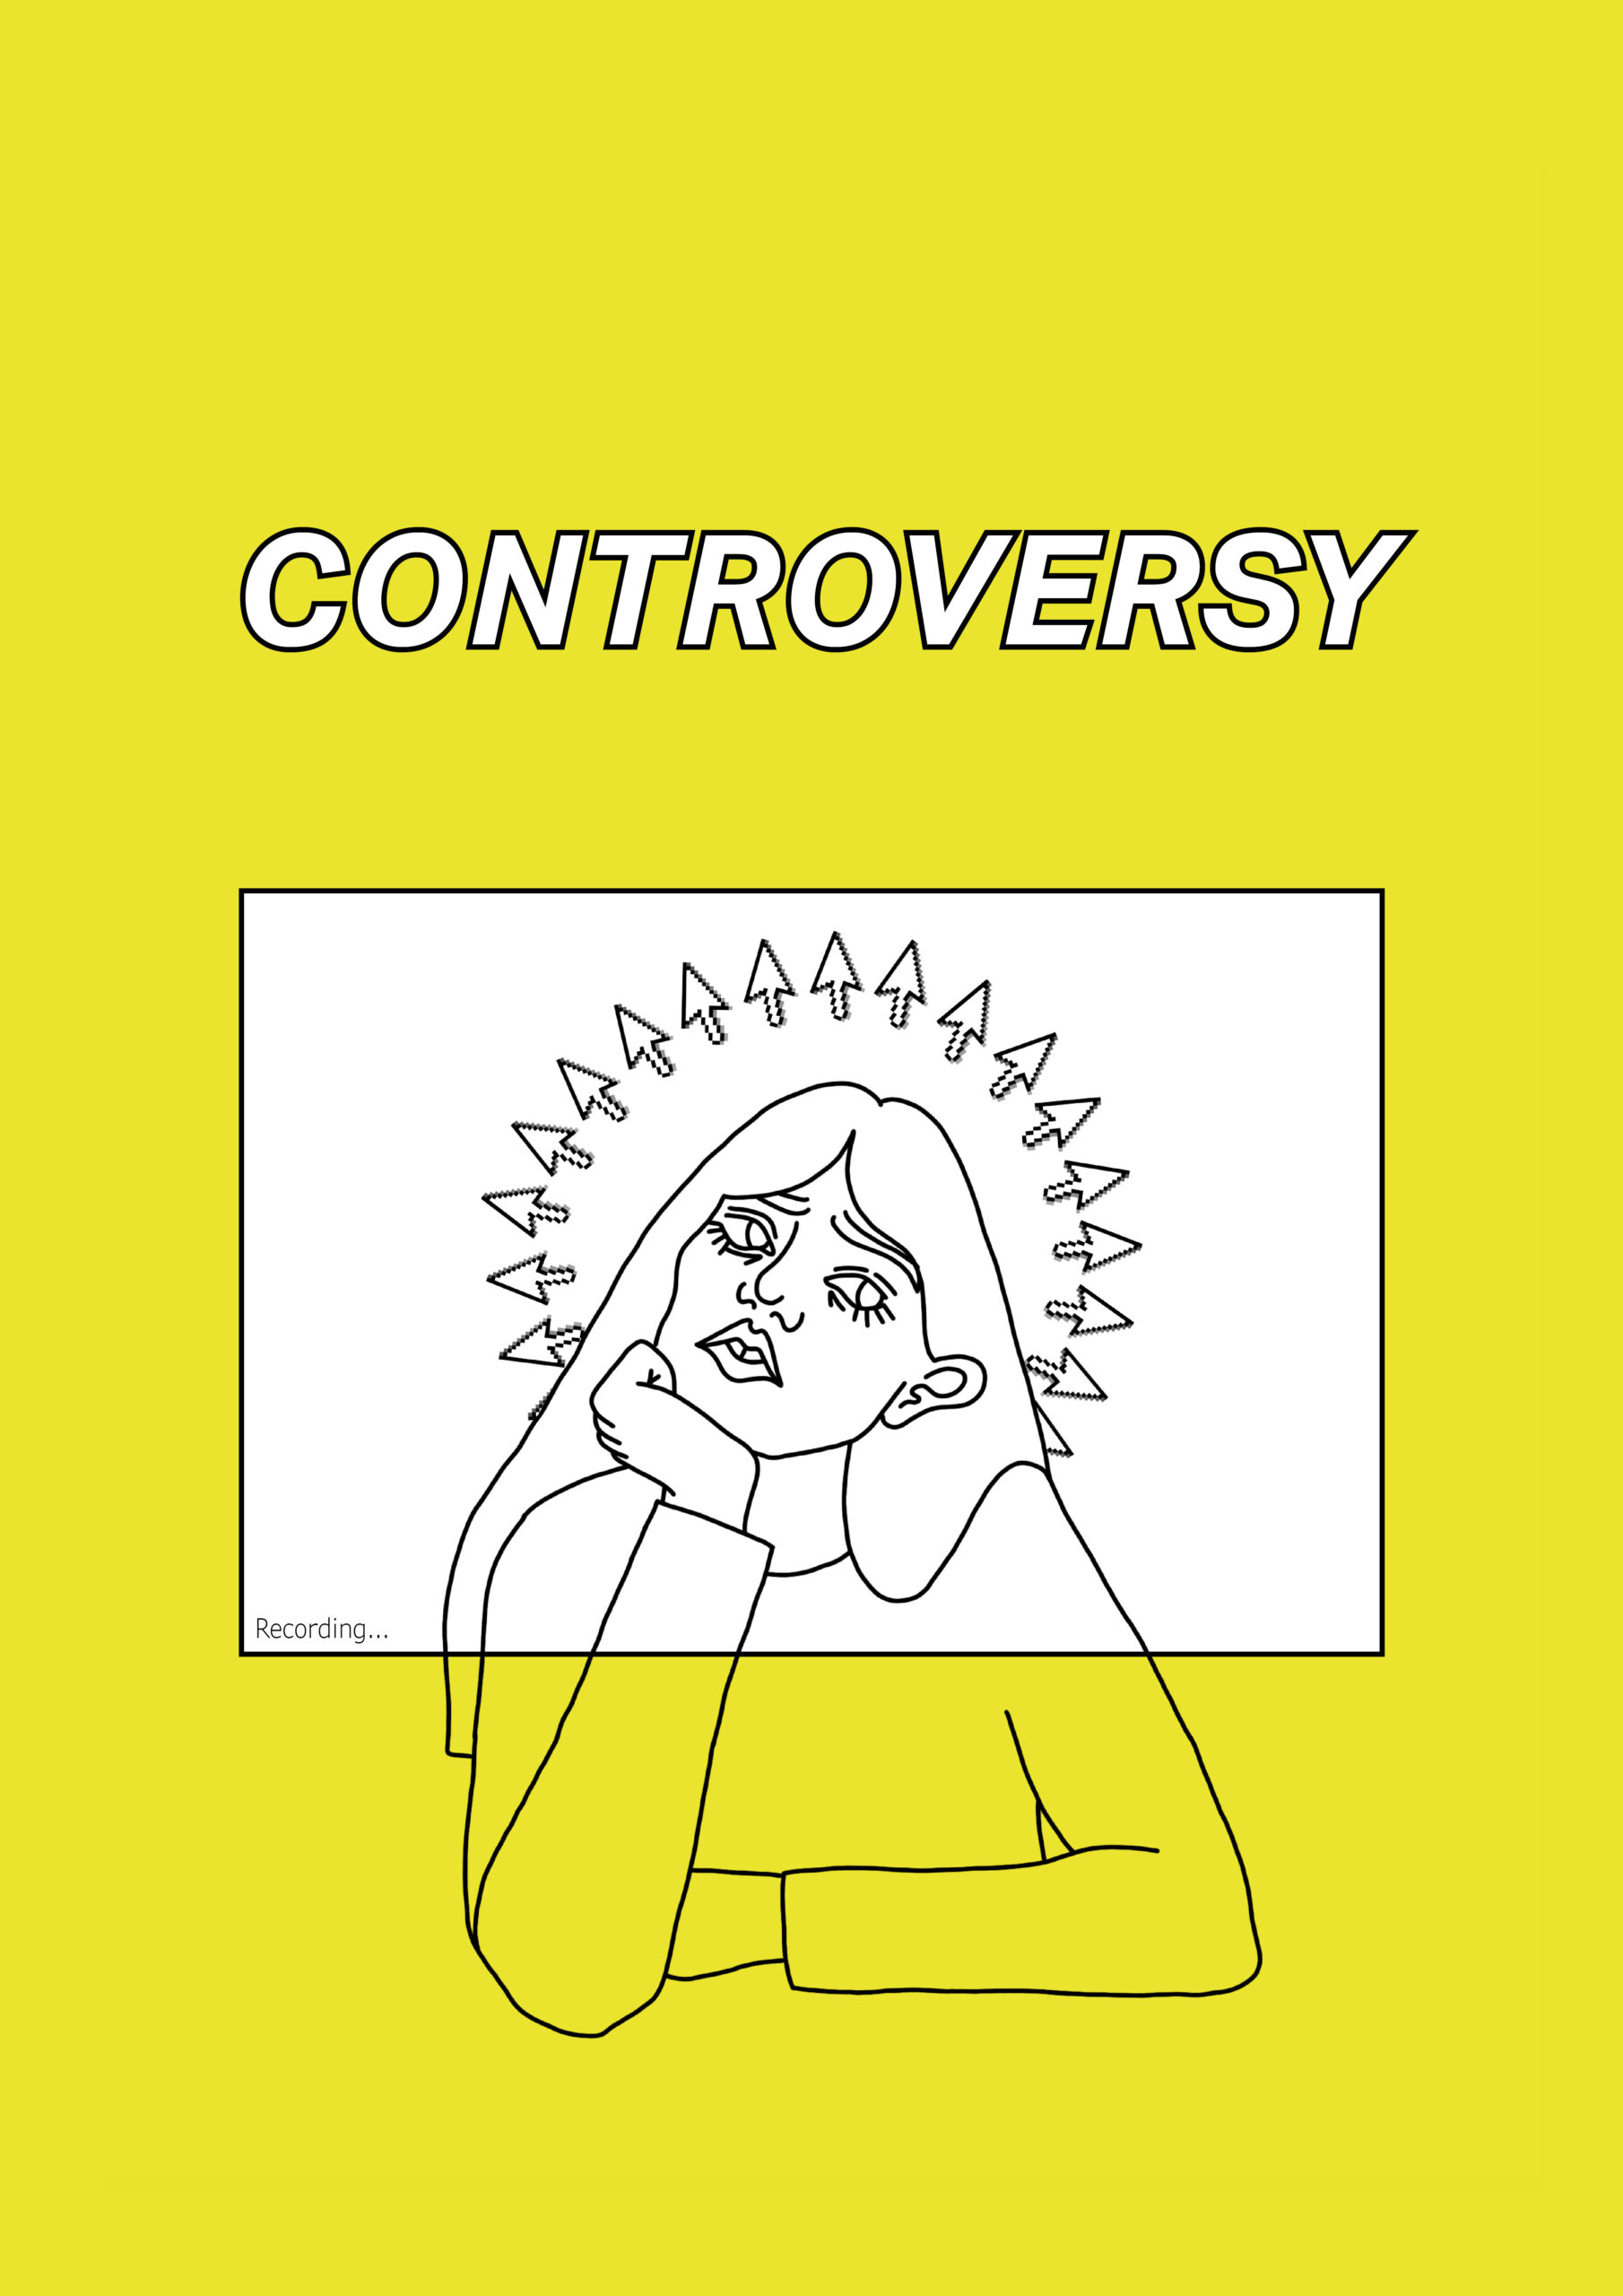 Controversy (Episode 2) Thumbnail